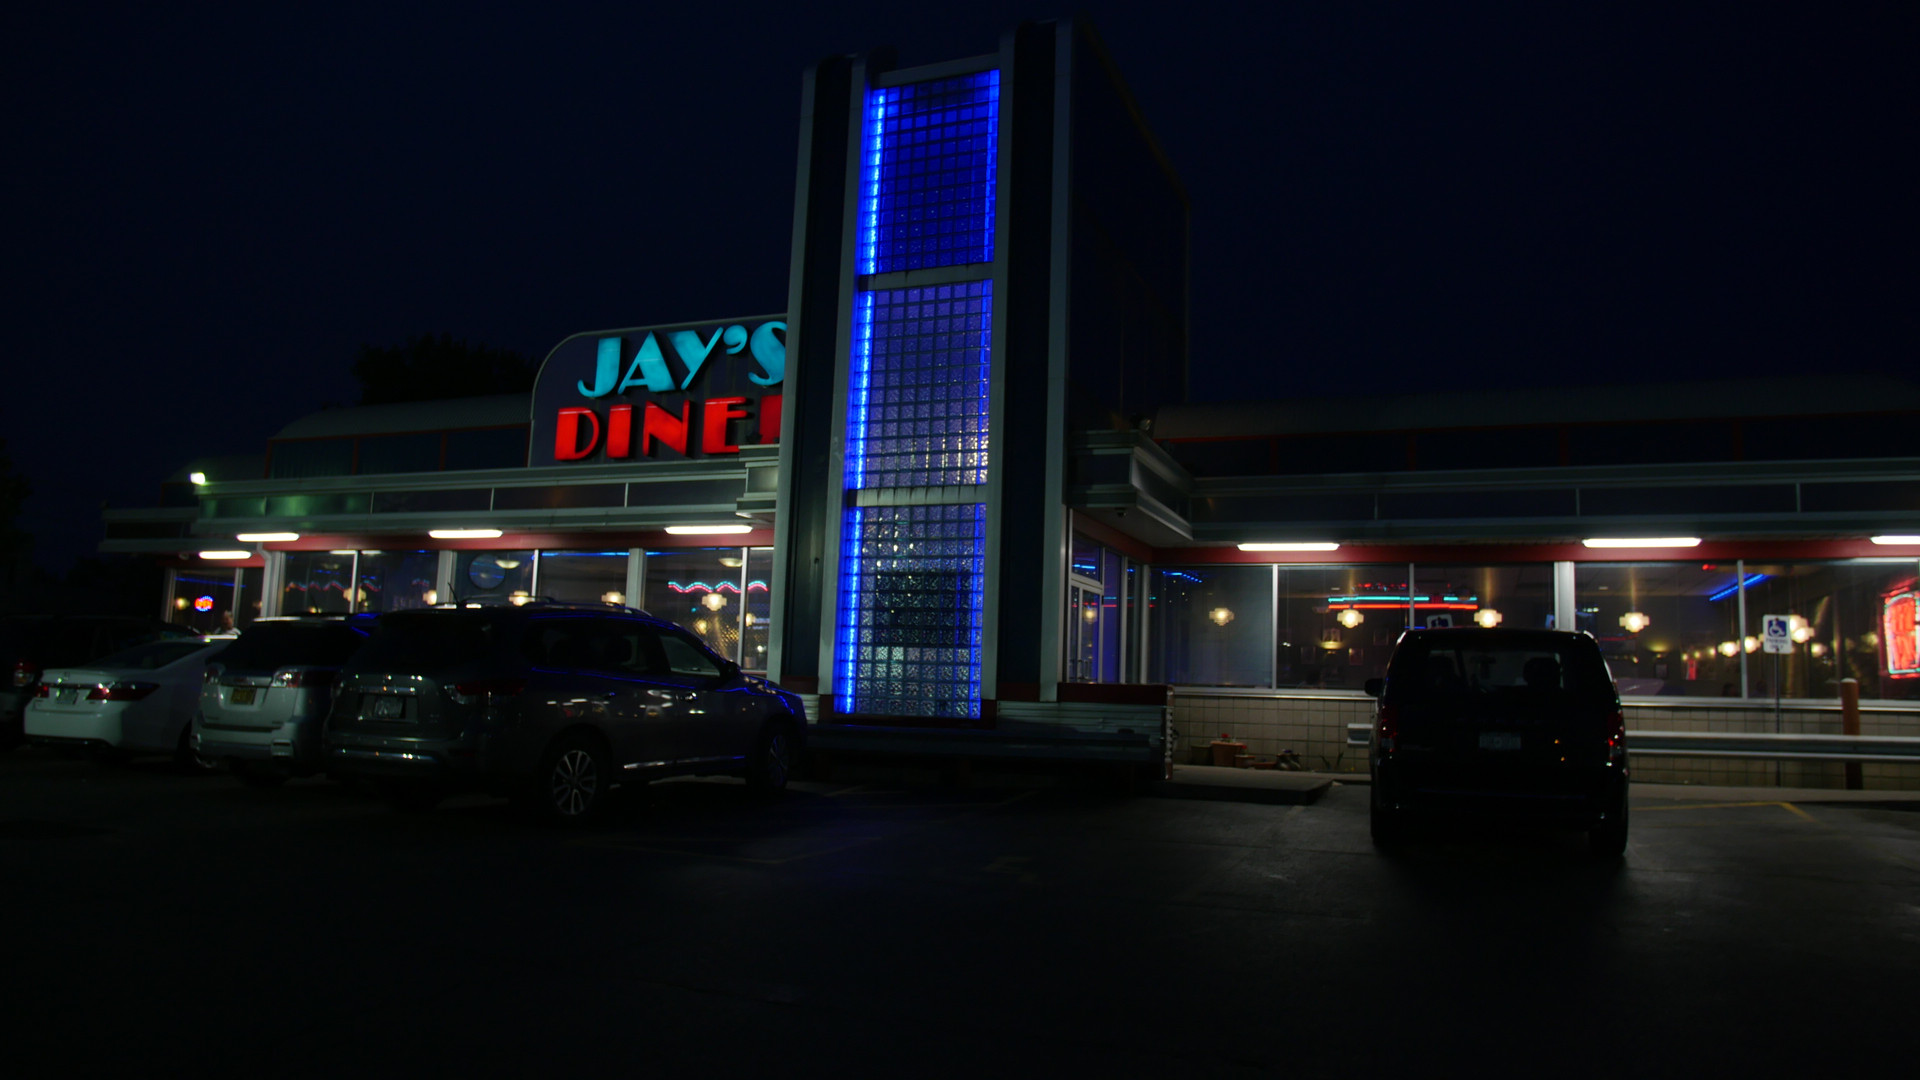 ICONIC JAY'S DINER